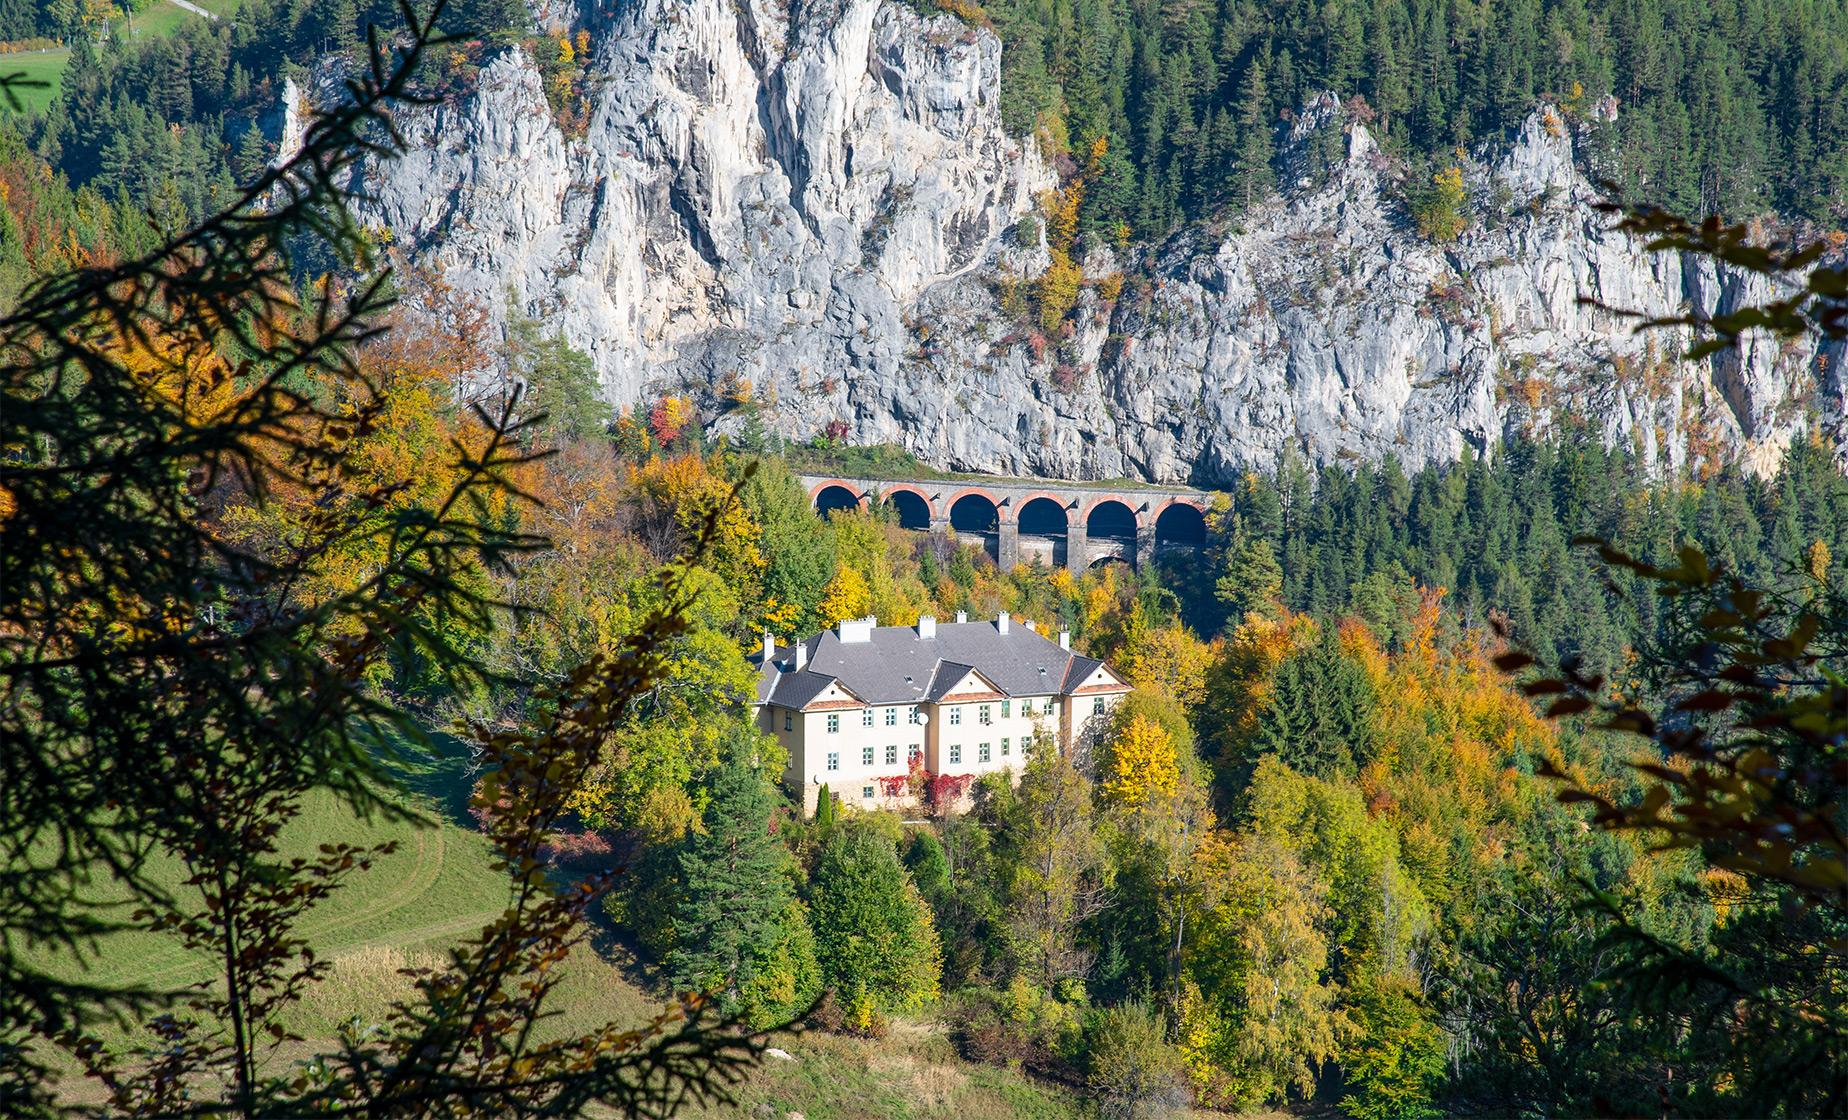 The Semmering Railway